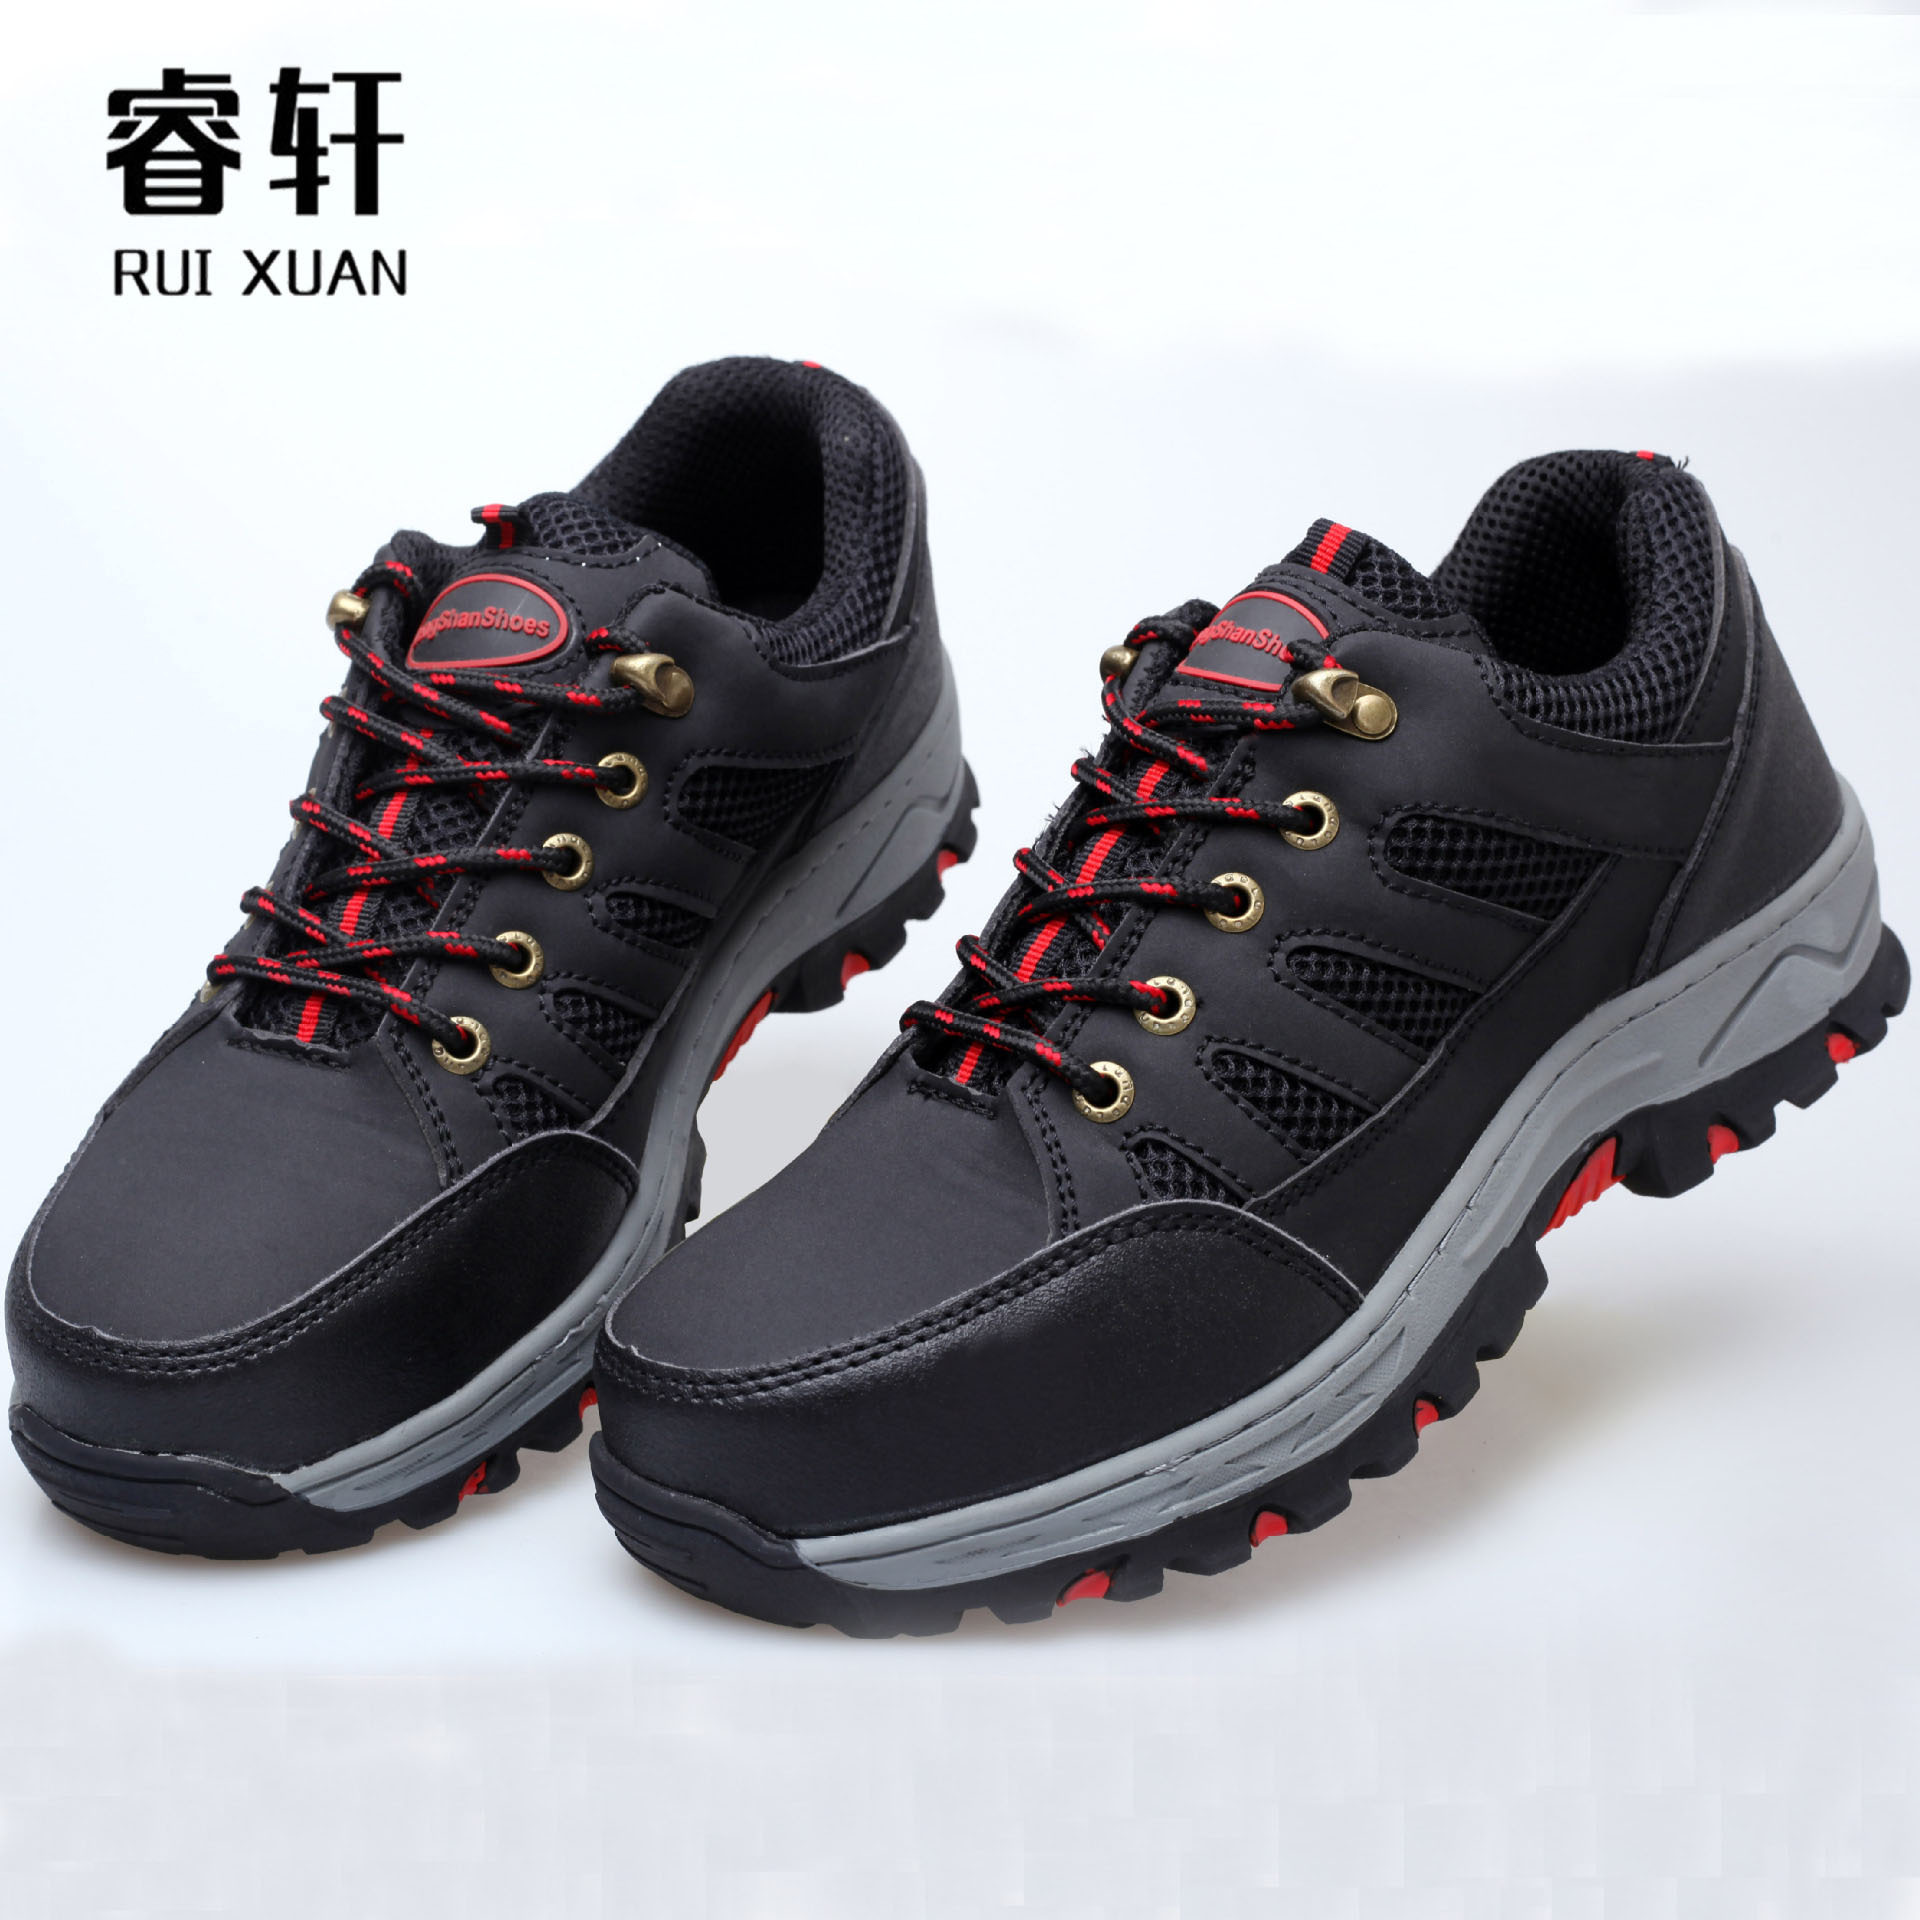 RUIXUAN Steel-toed Kevlar anti-puncture middle and low-top protective shoes Summer work shoes